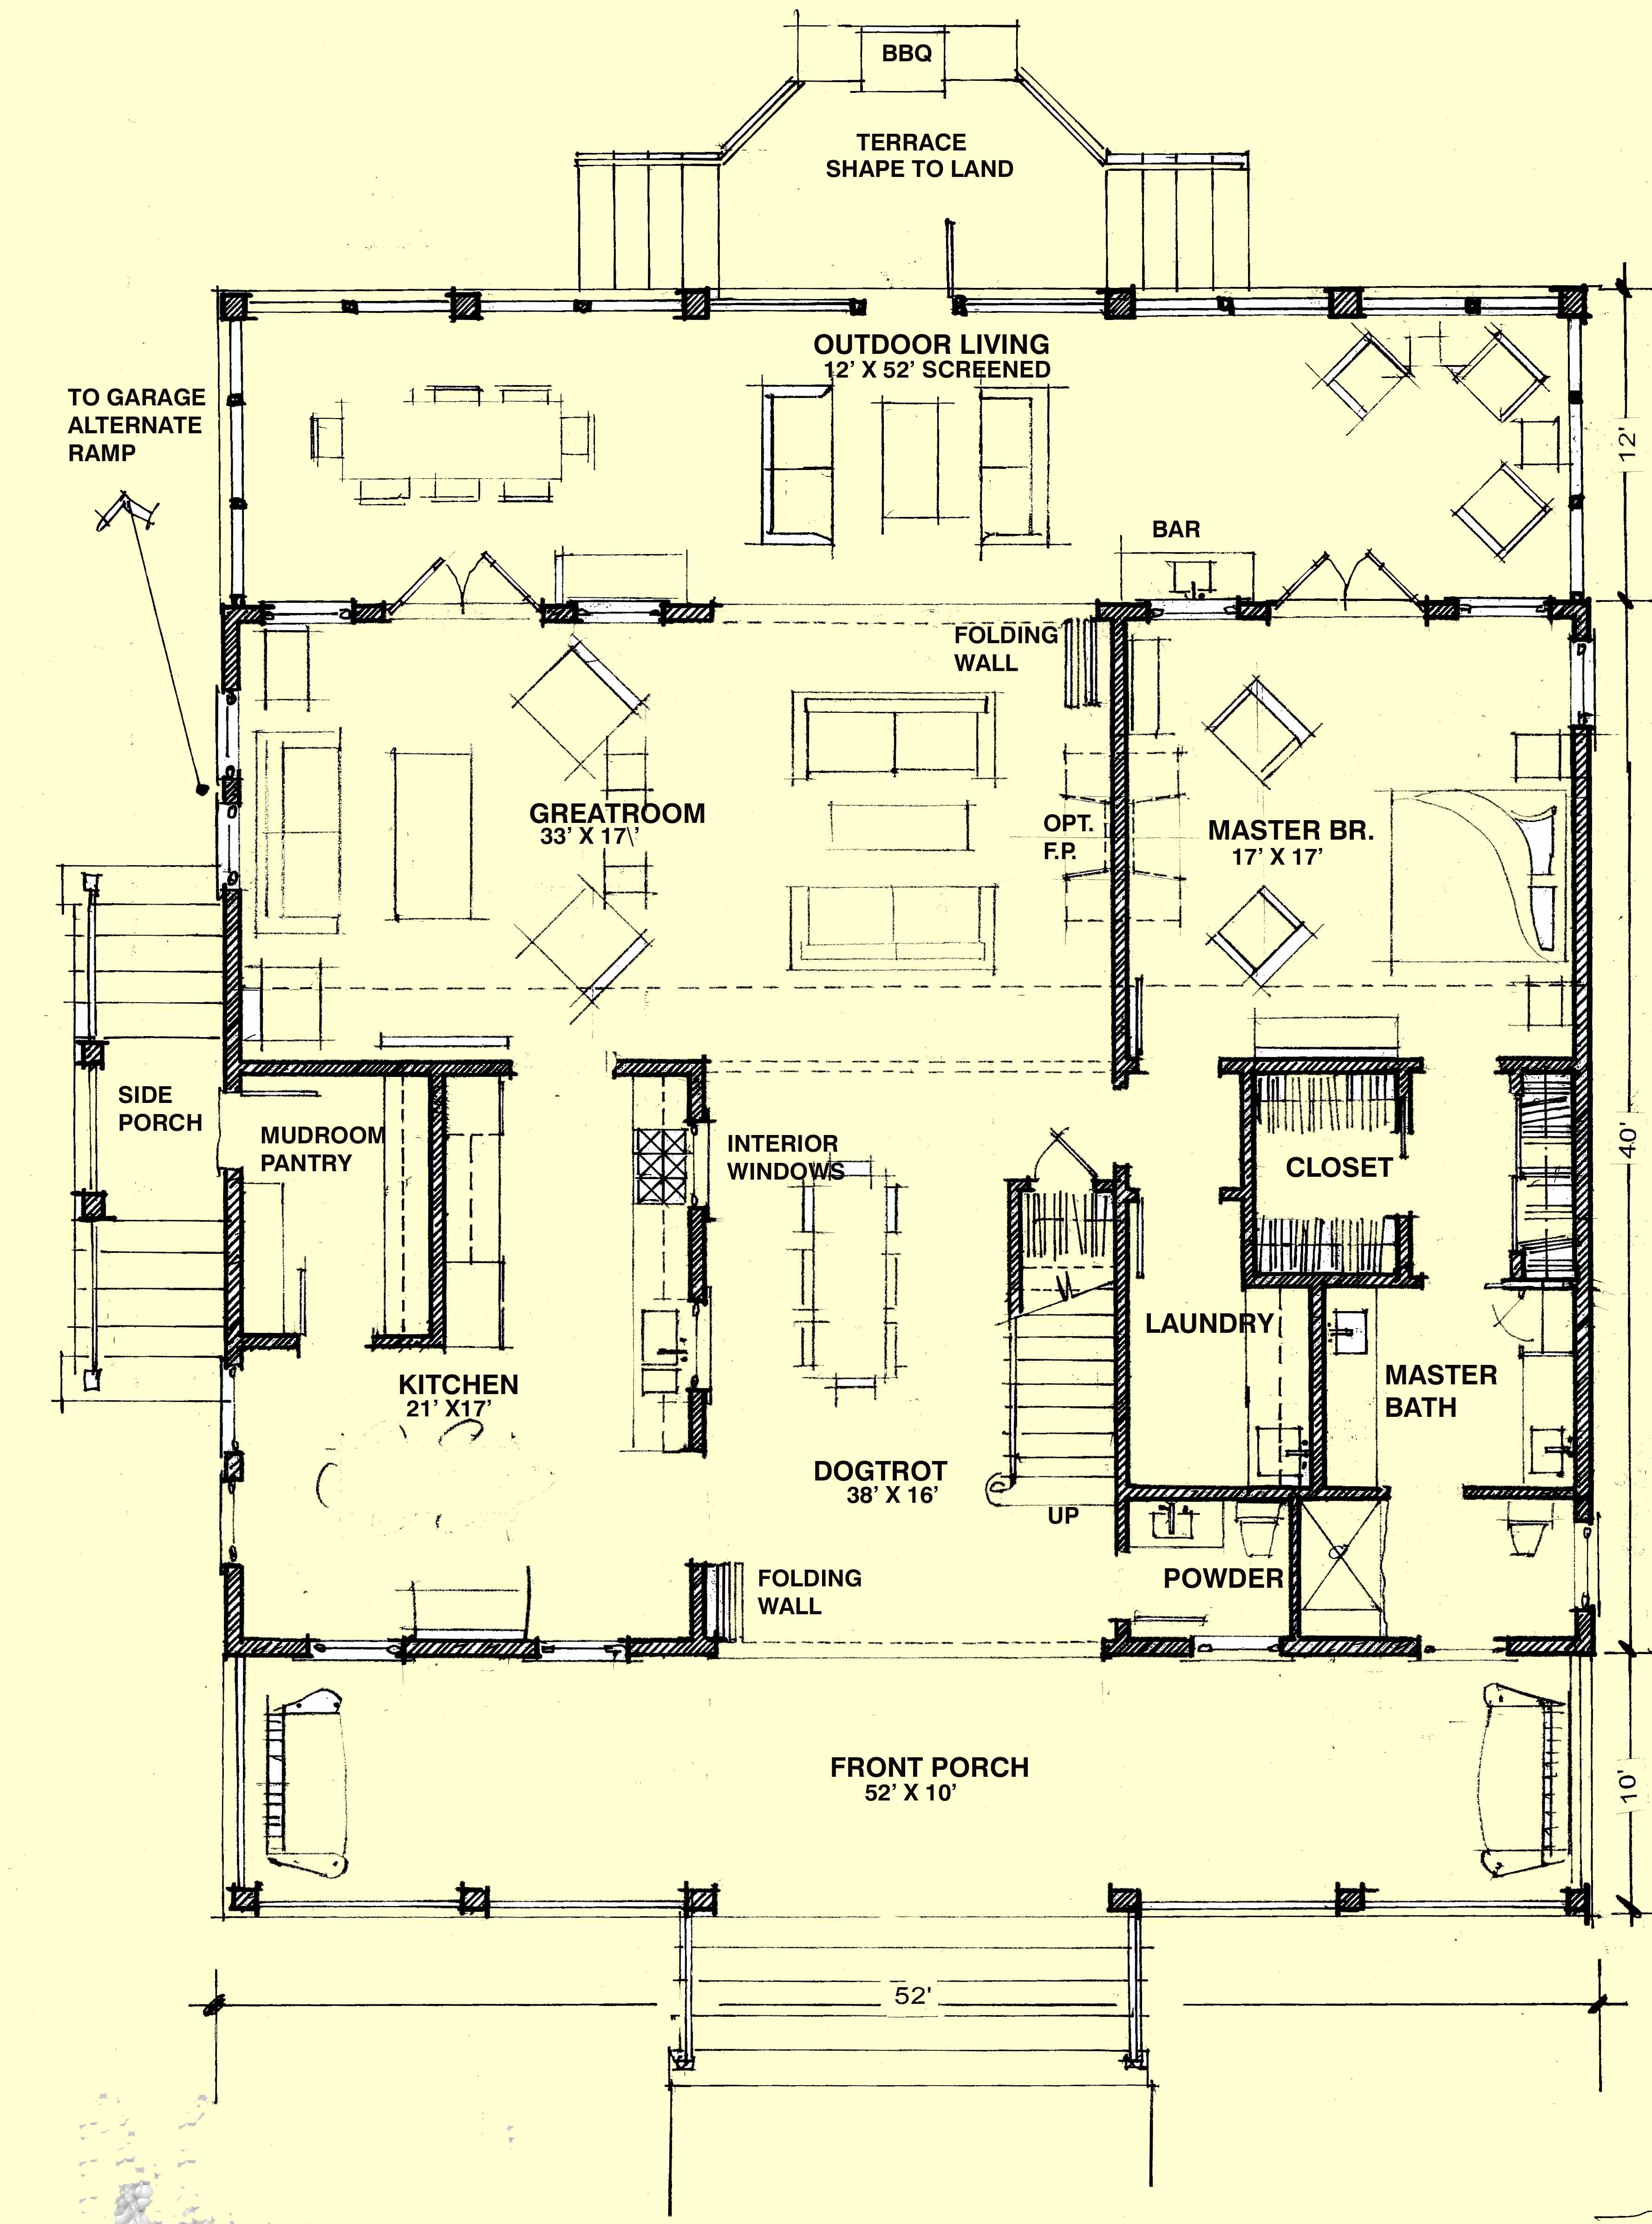 Dogtrot floor plans hot humid solutions hot humid solutions